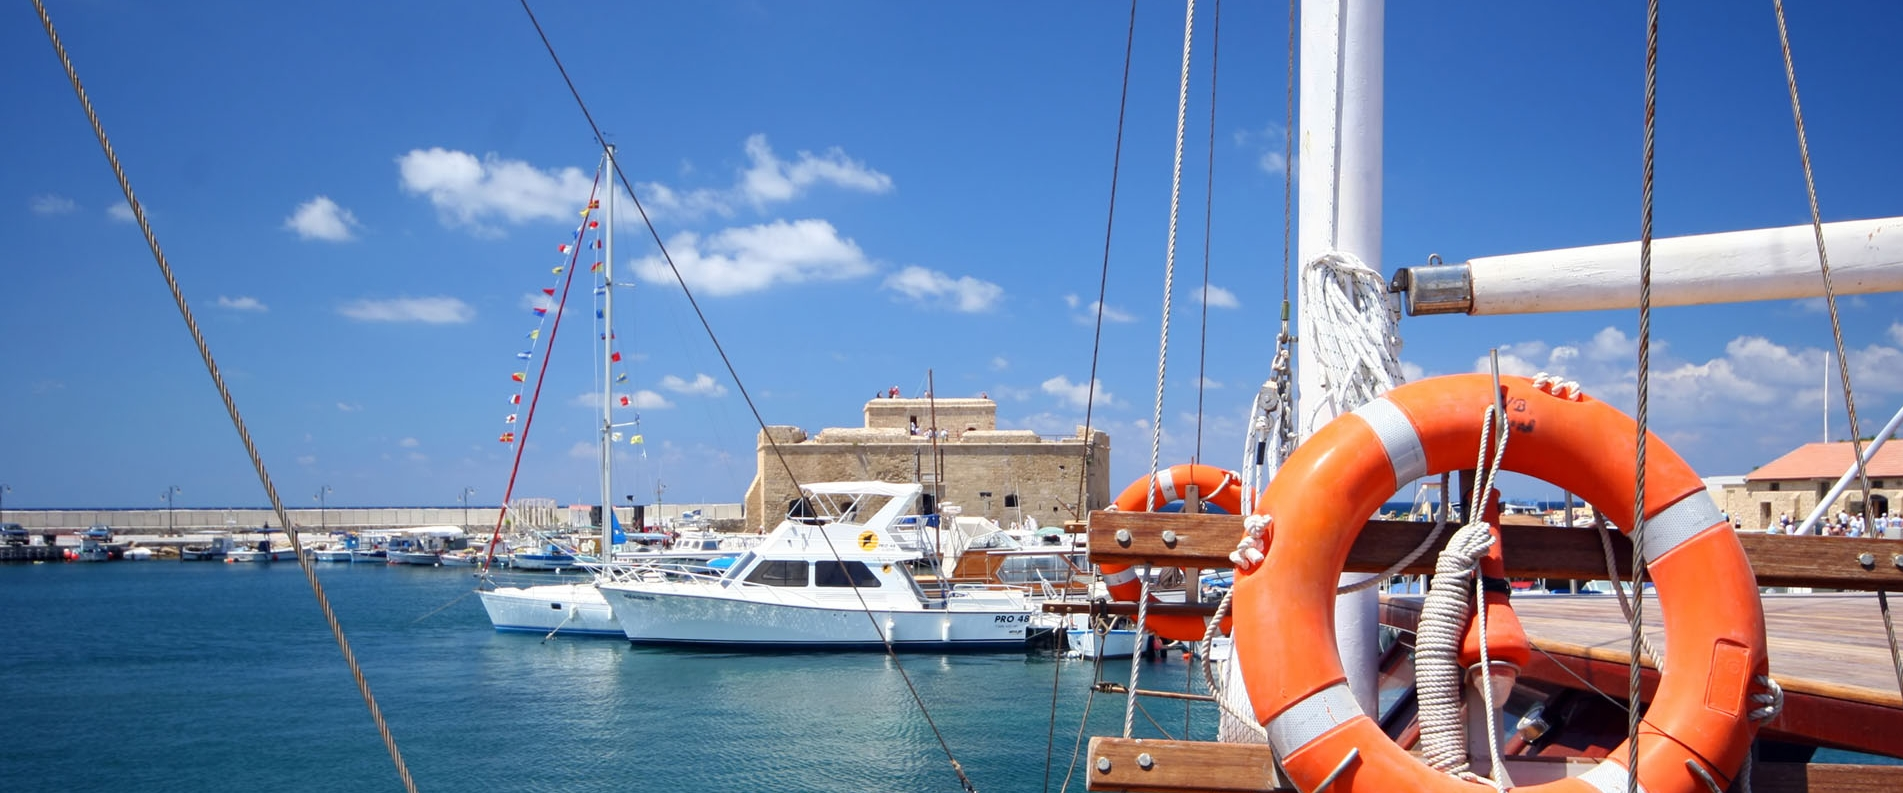 Things to do in Paphos: tourist attractions, museums and restaurants